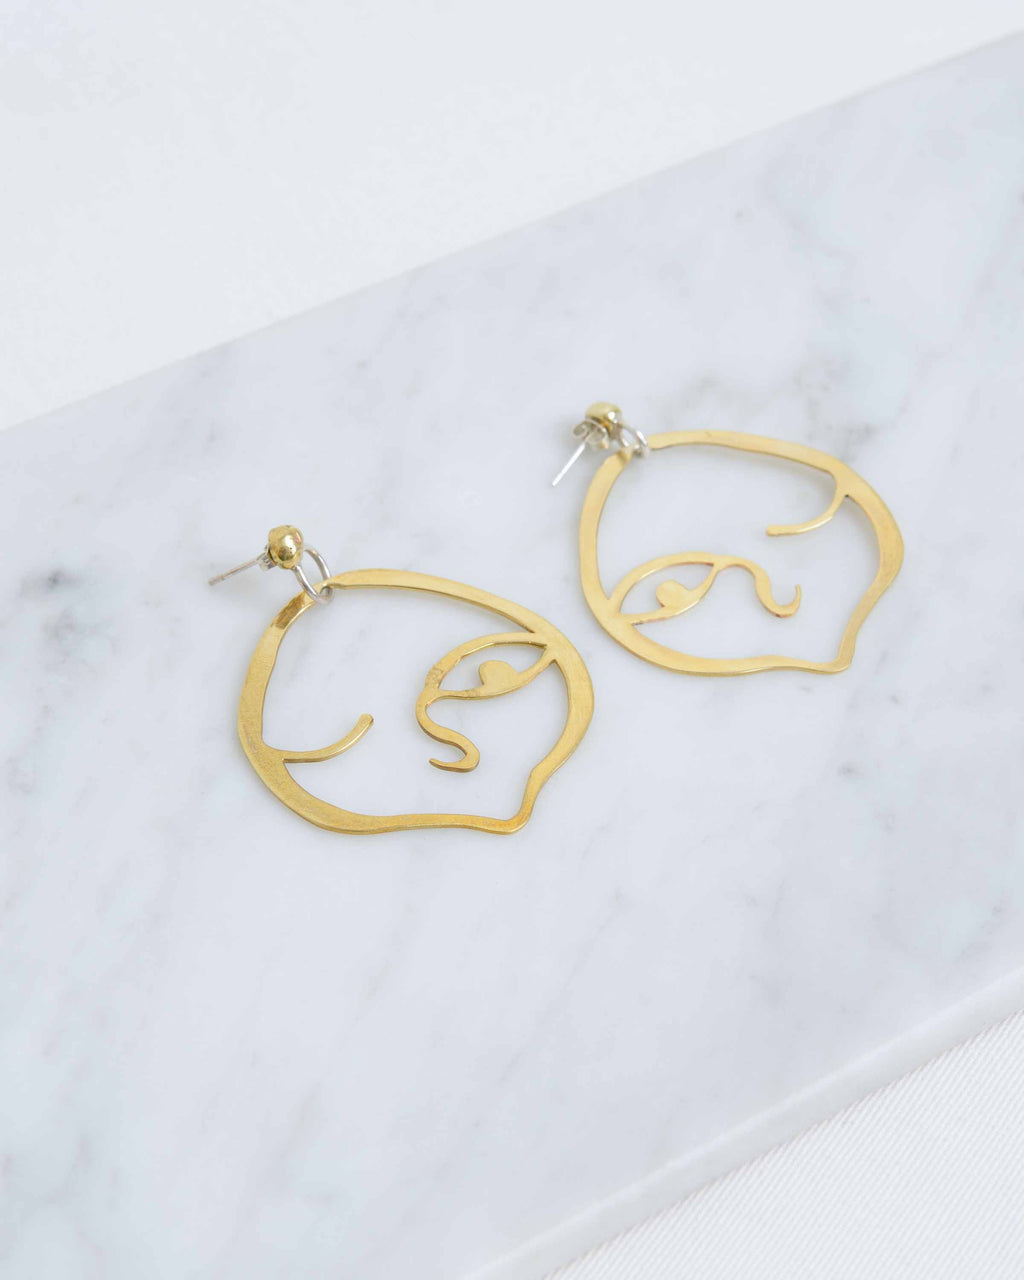 Wink Earrings